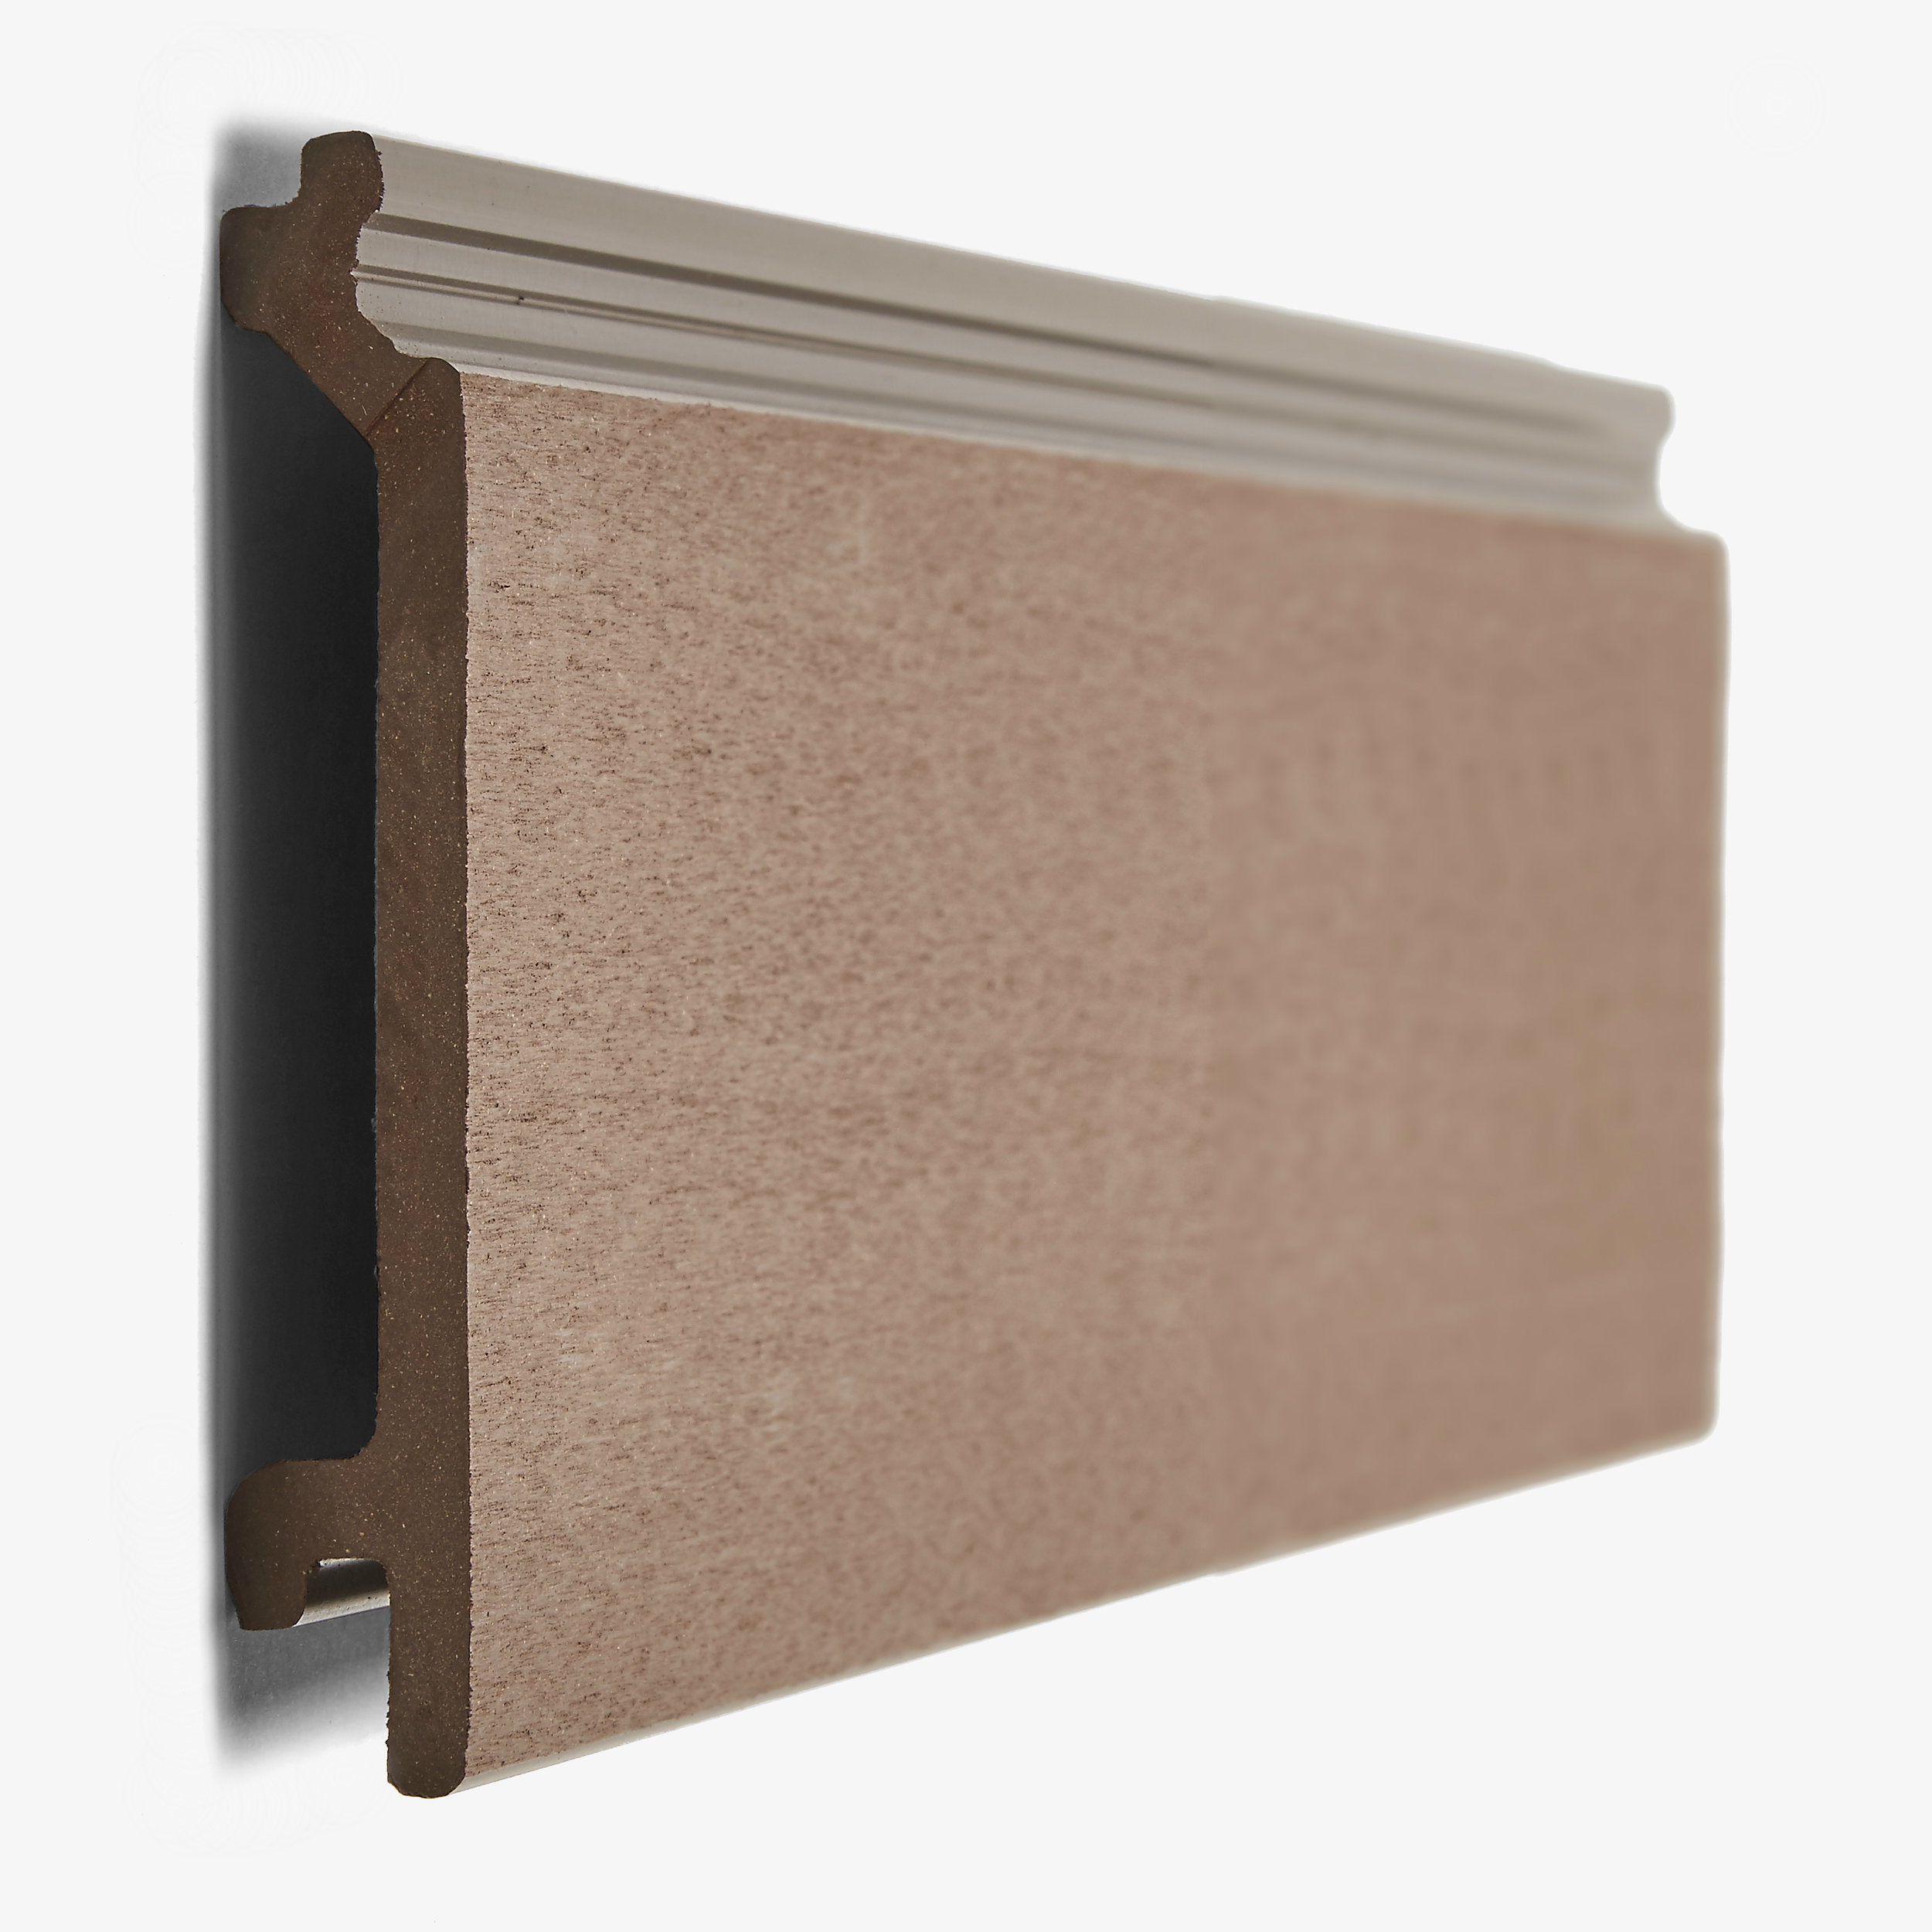 Cladding_Walnut_3-grey.jpg